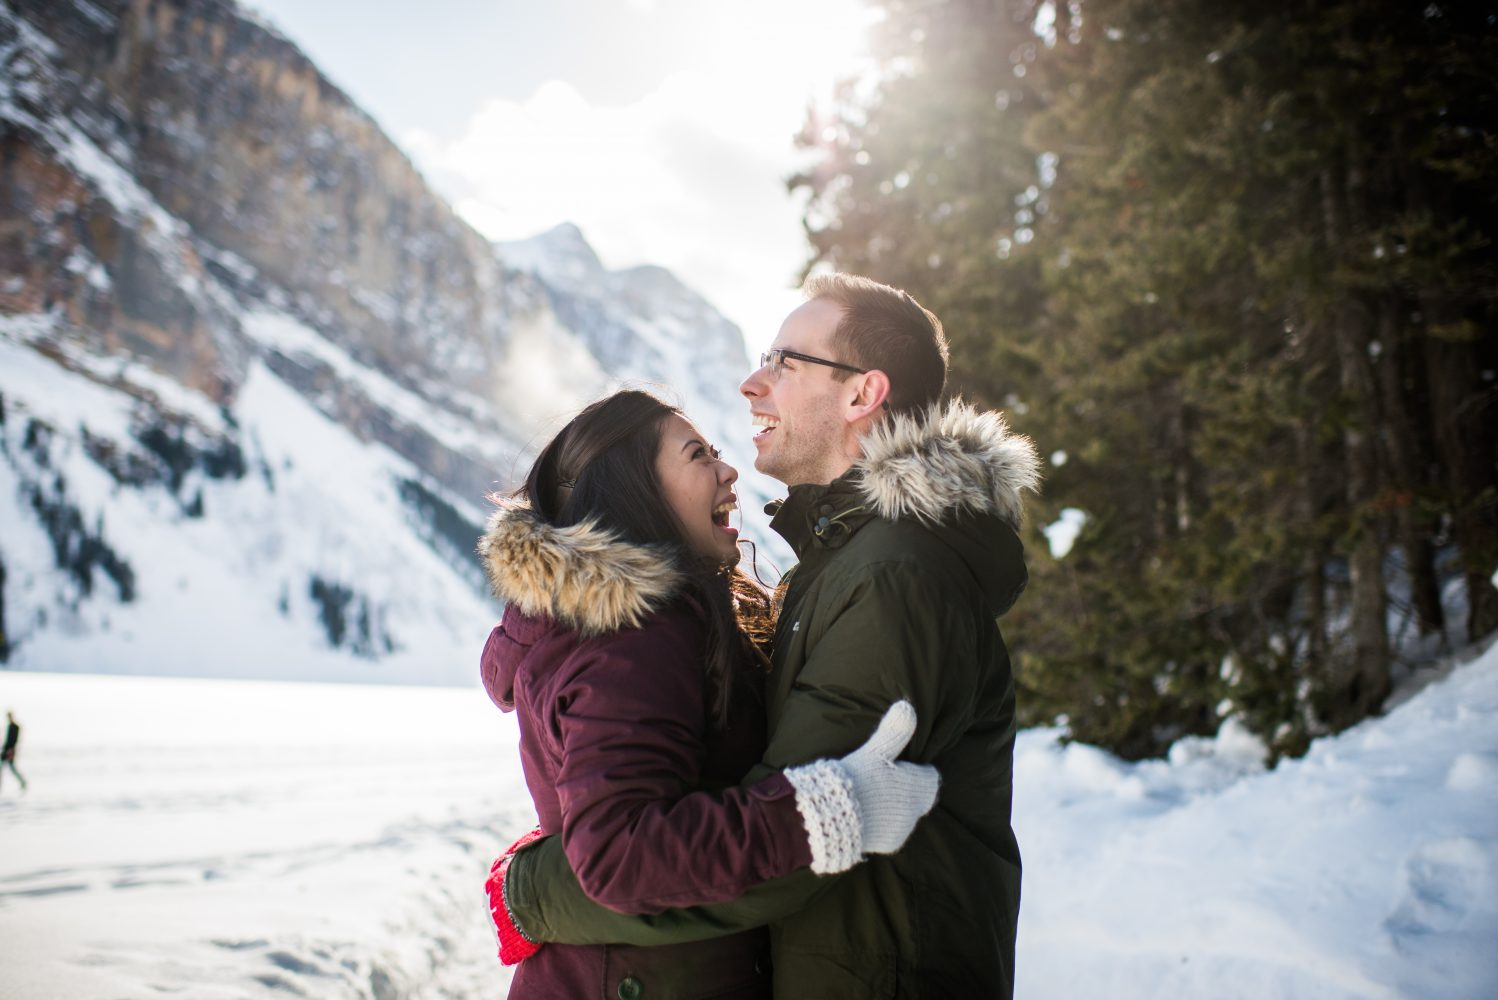 Engagement Photography at the stunning fairmont lake louise, snowy sun soaked images of an adorable couple | 3Haus Photographics